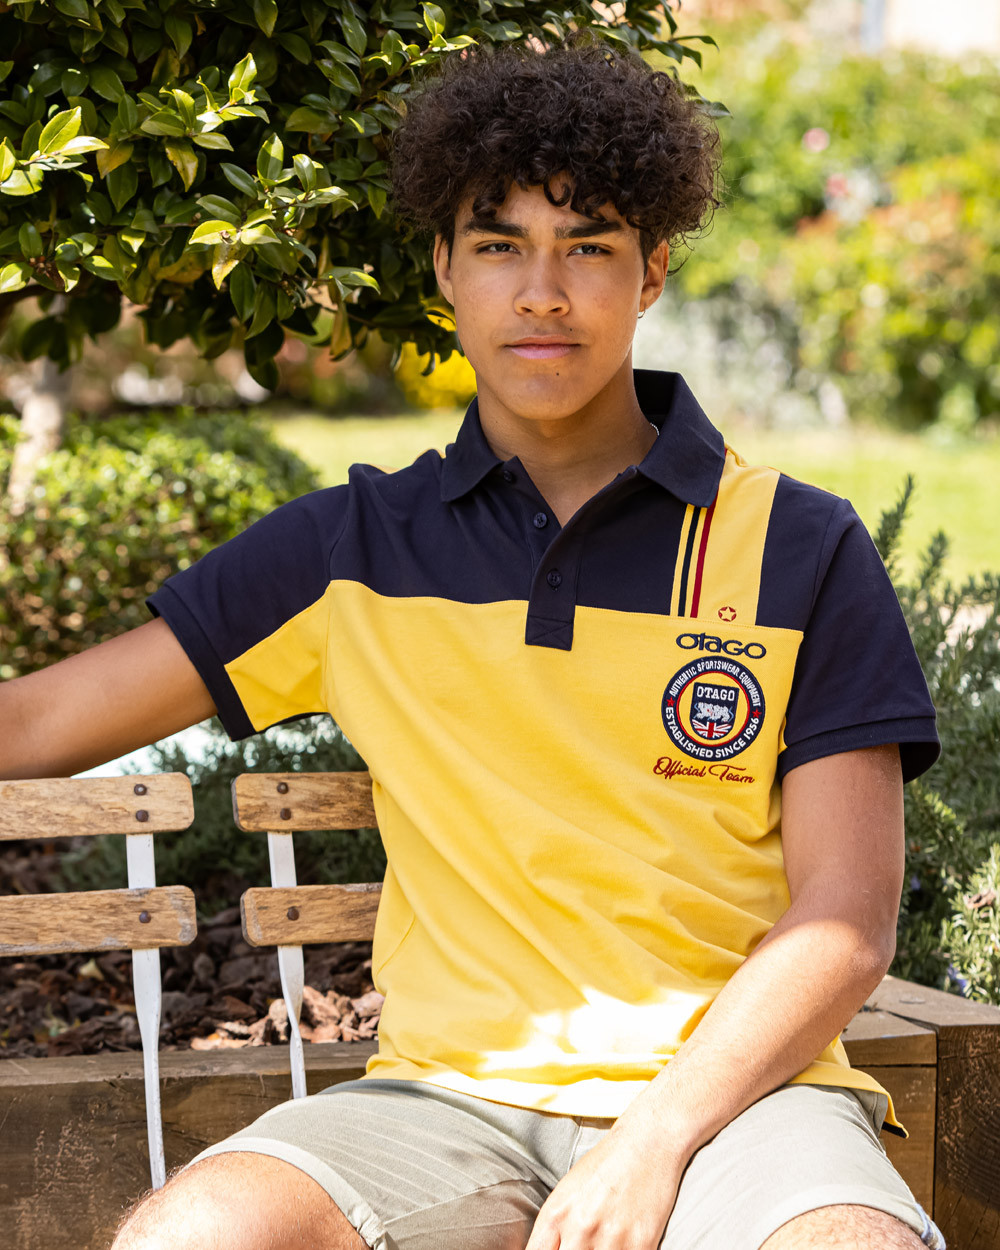 Polo Otabadge Otago rugby manches courtes mimosa marine Homme